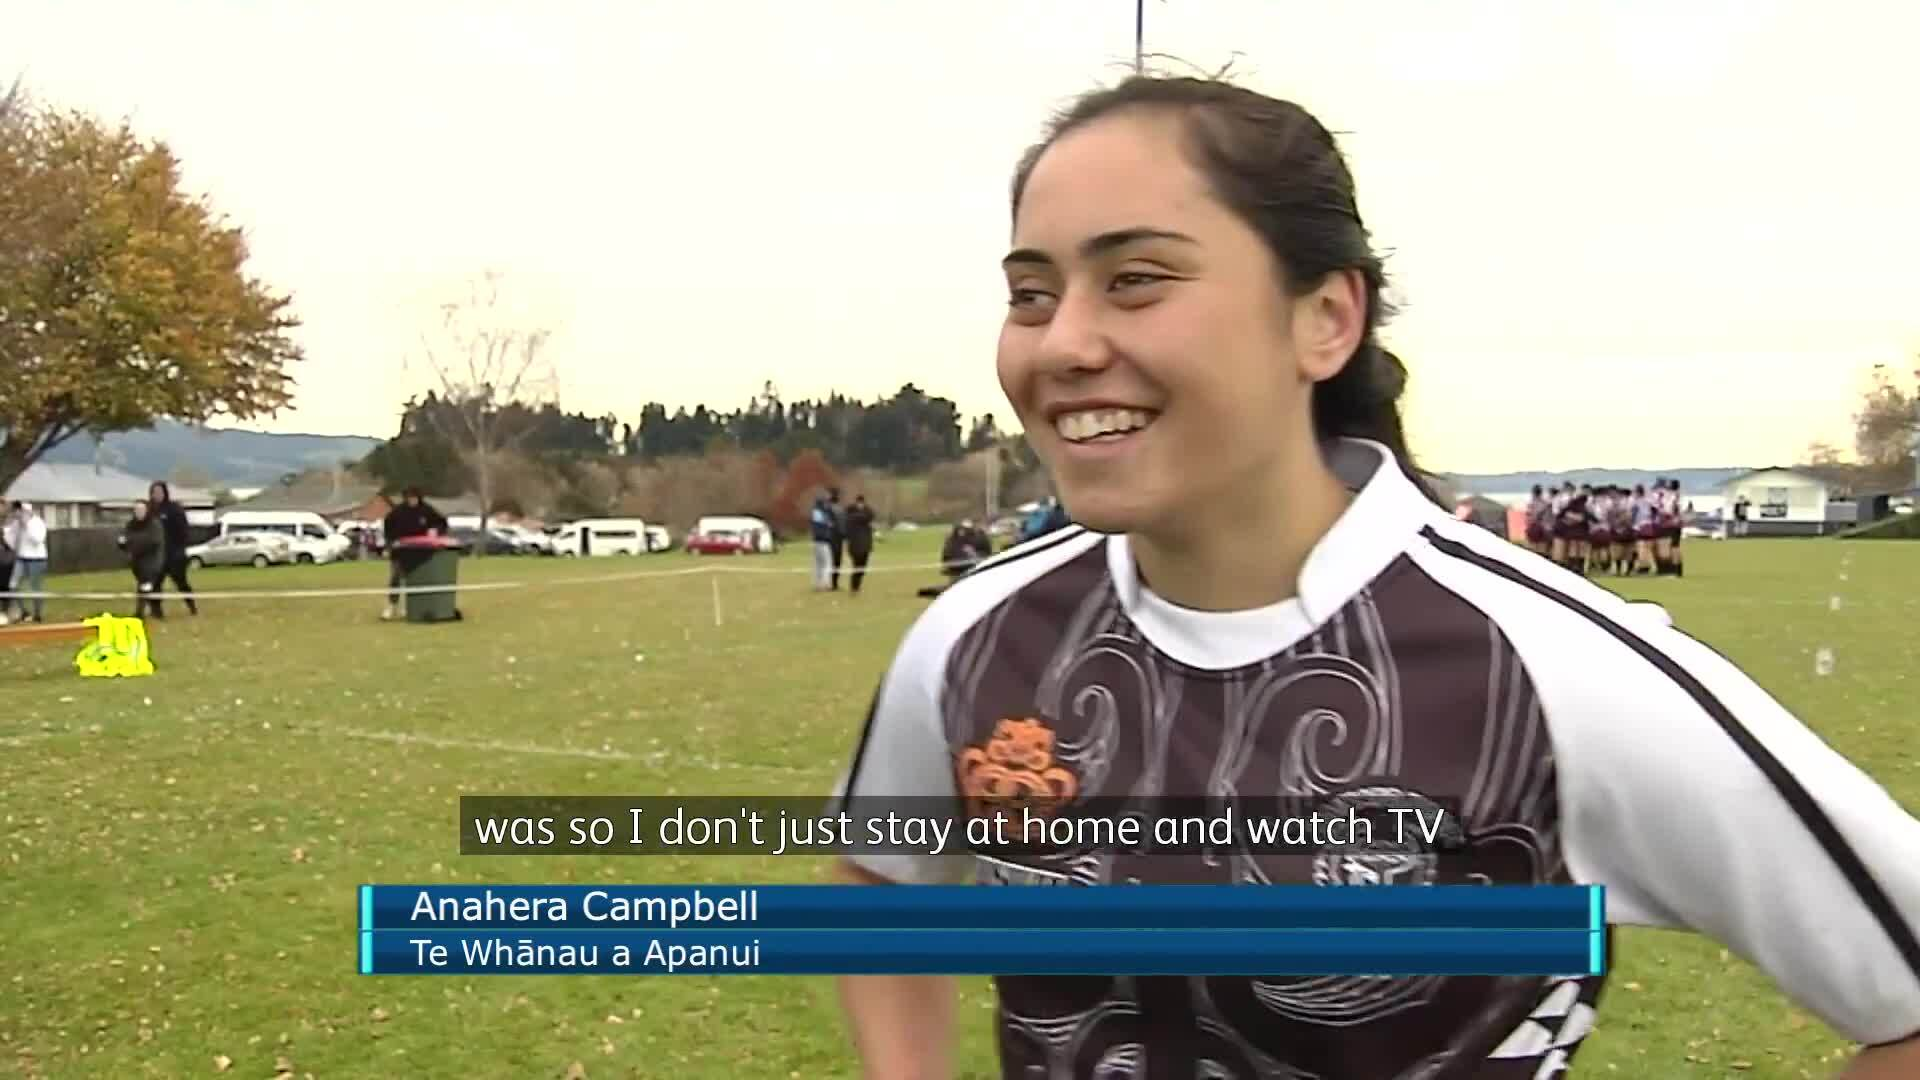 Video for NZMRL Rangatahi tournament growing the game of rugby league